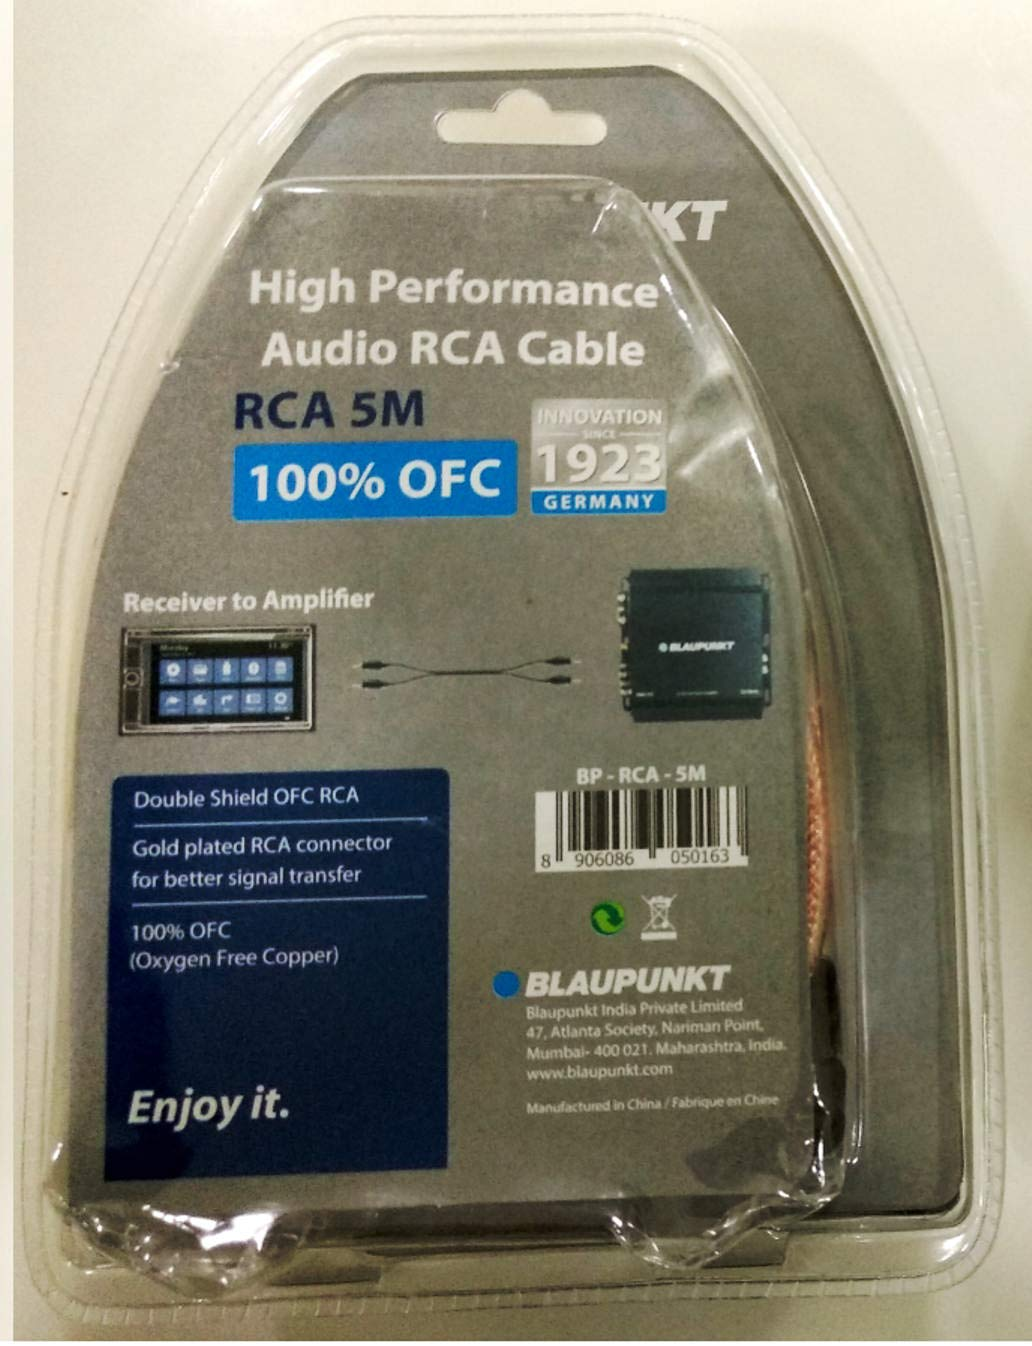 Blaupunkt BP-RCA-5M 5 Meters 100% OFC High Performance RCA Cable